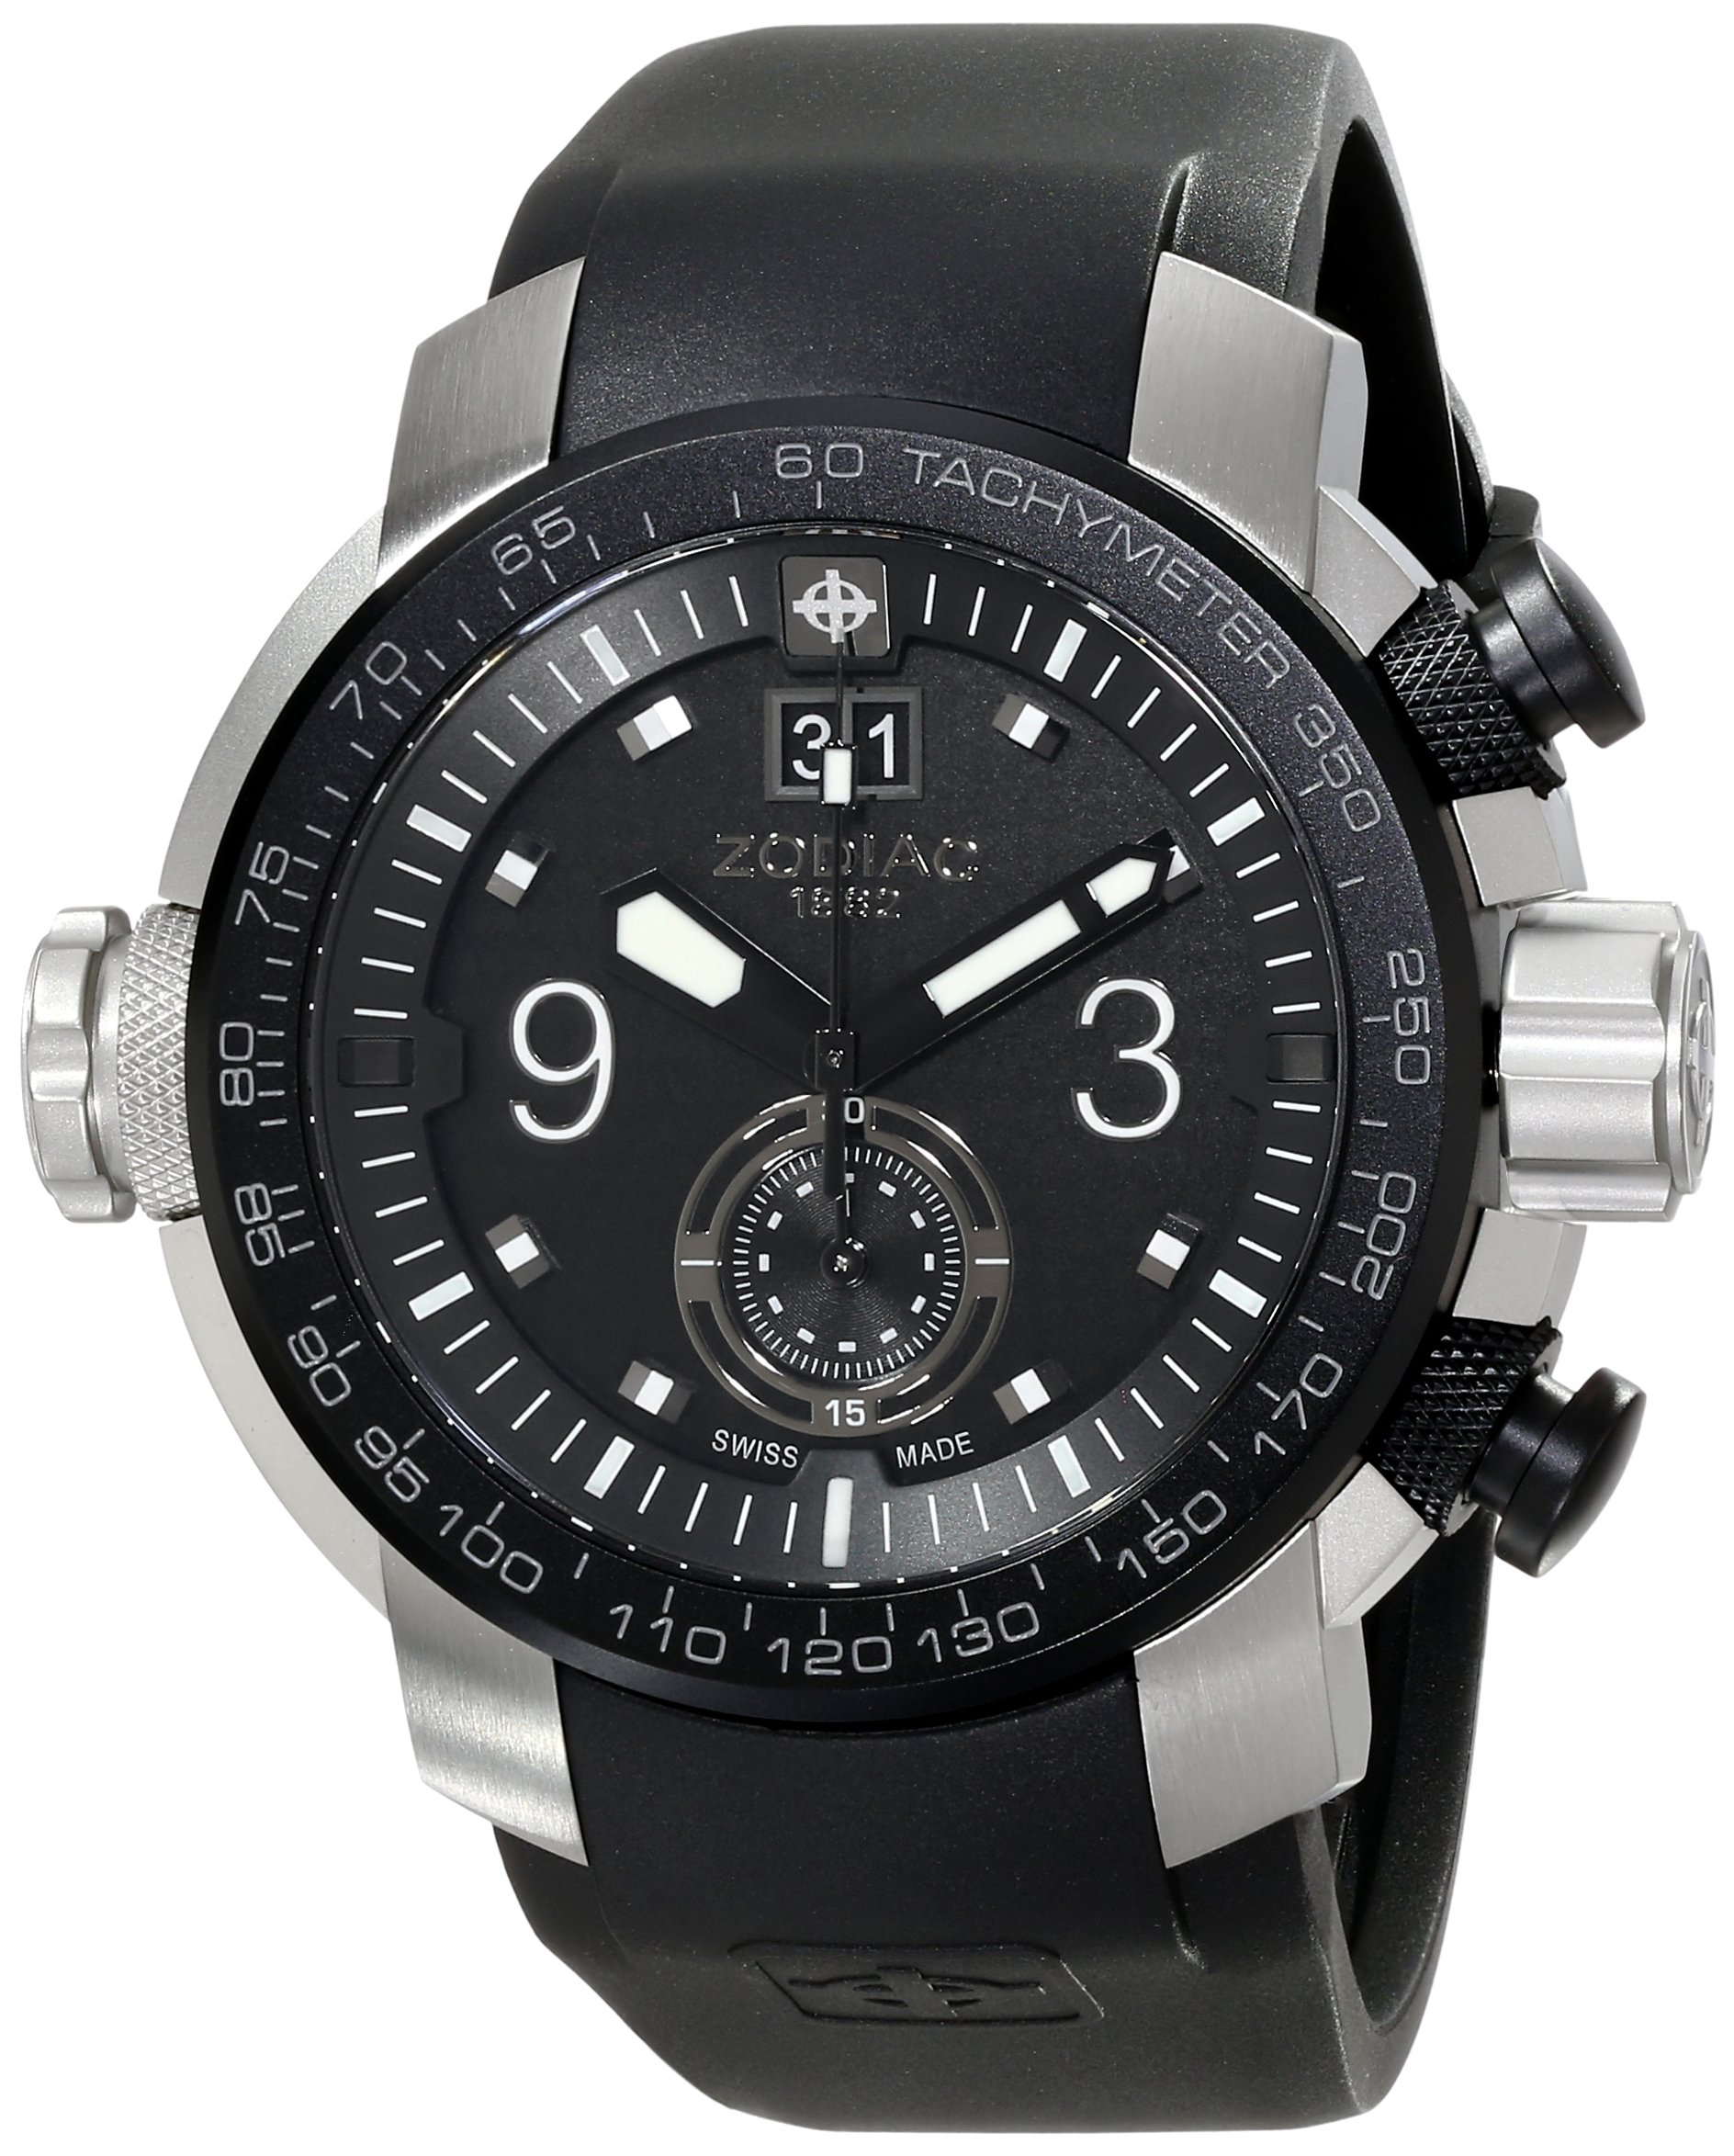 Zodiac ZMX Men's ZO8524 ''Special Ops'' Stainless Steel Watch with Black Rubber Band by Zodiac (Image #1)